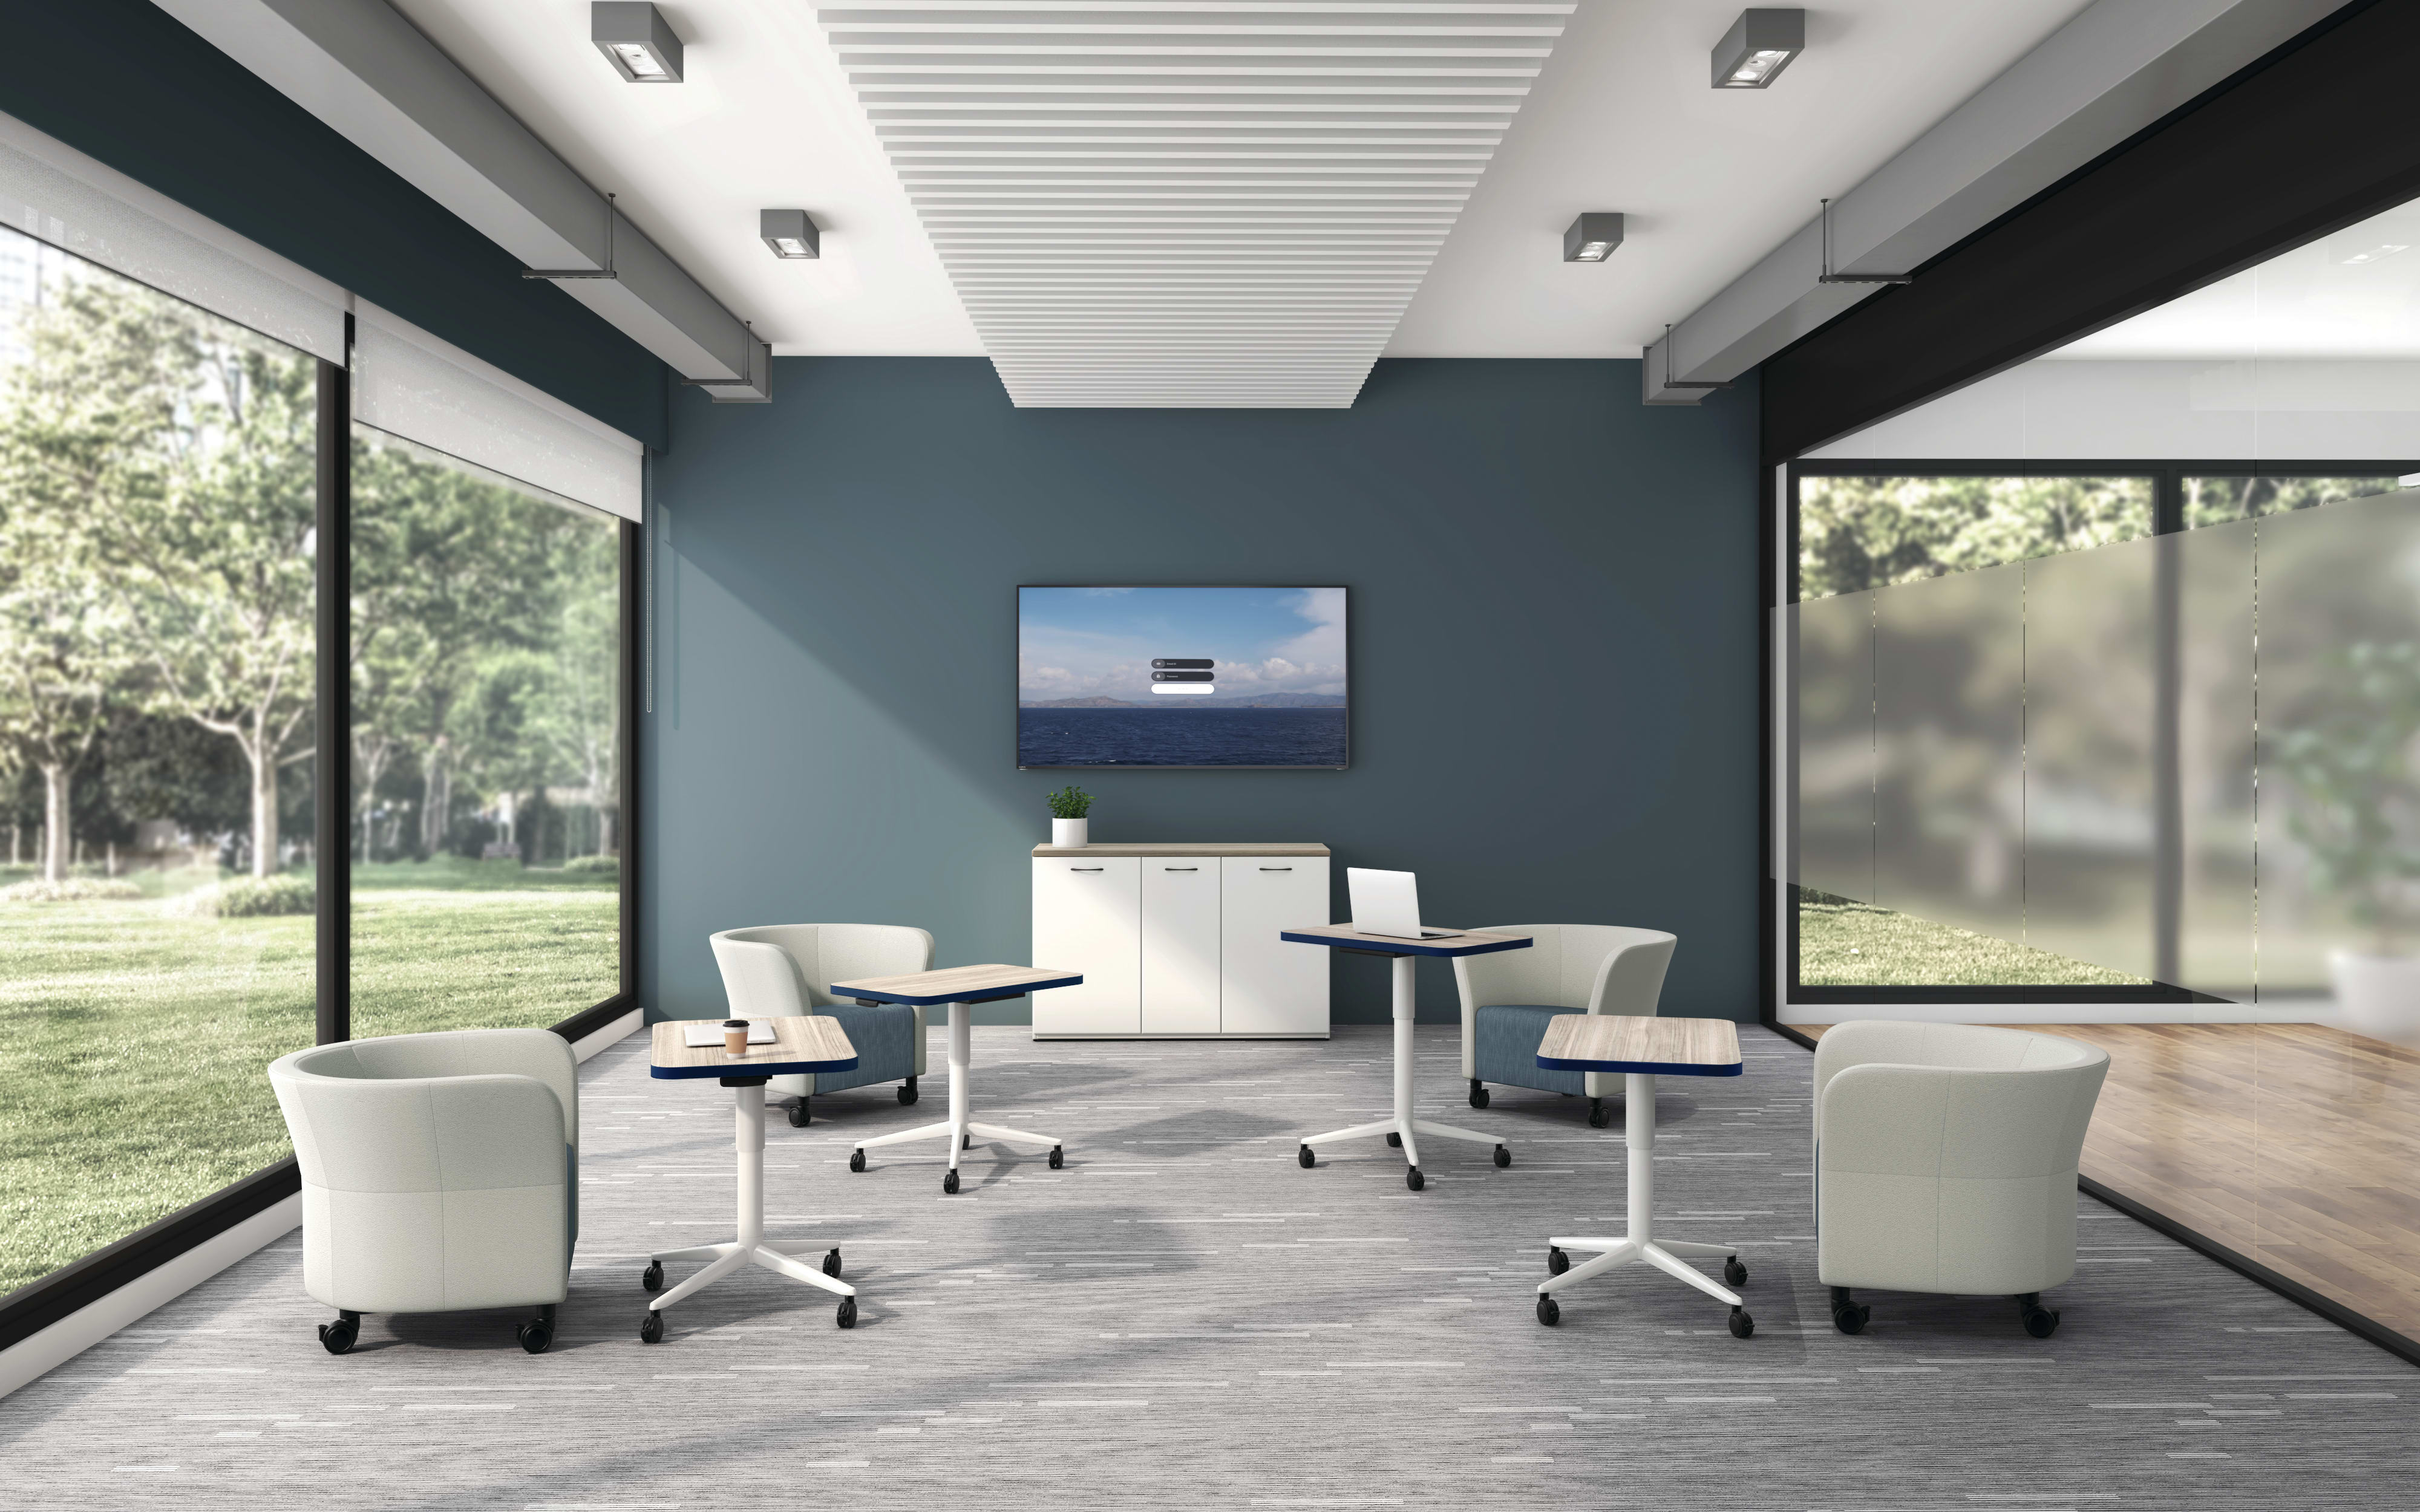 Huddle Laptop Tables with Flock Round Lounge Chairs socially distanced around a conference room.